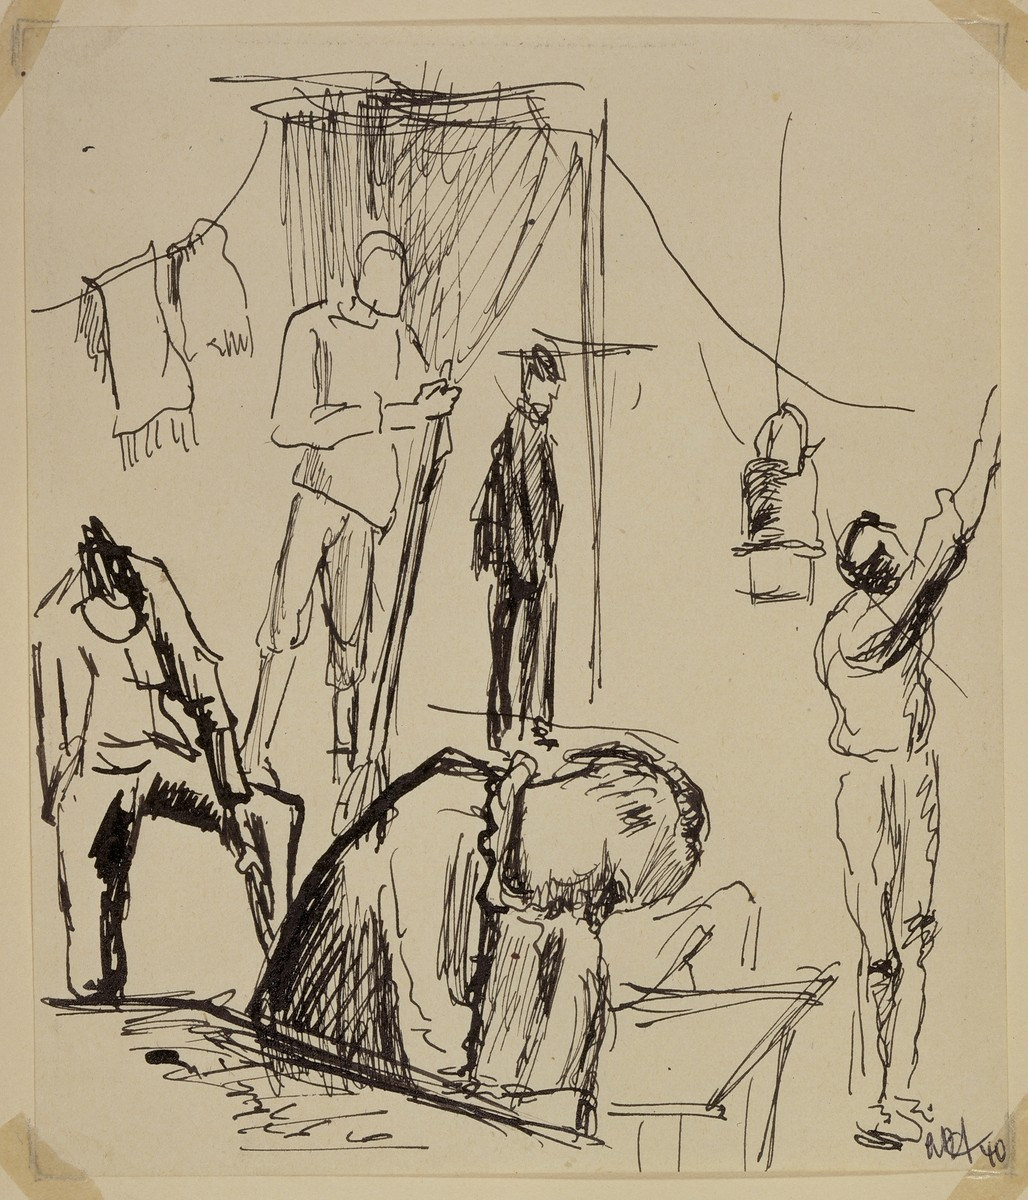 """Dreary Inside of Men's Barracks"" by Lili Andrieux."